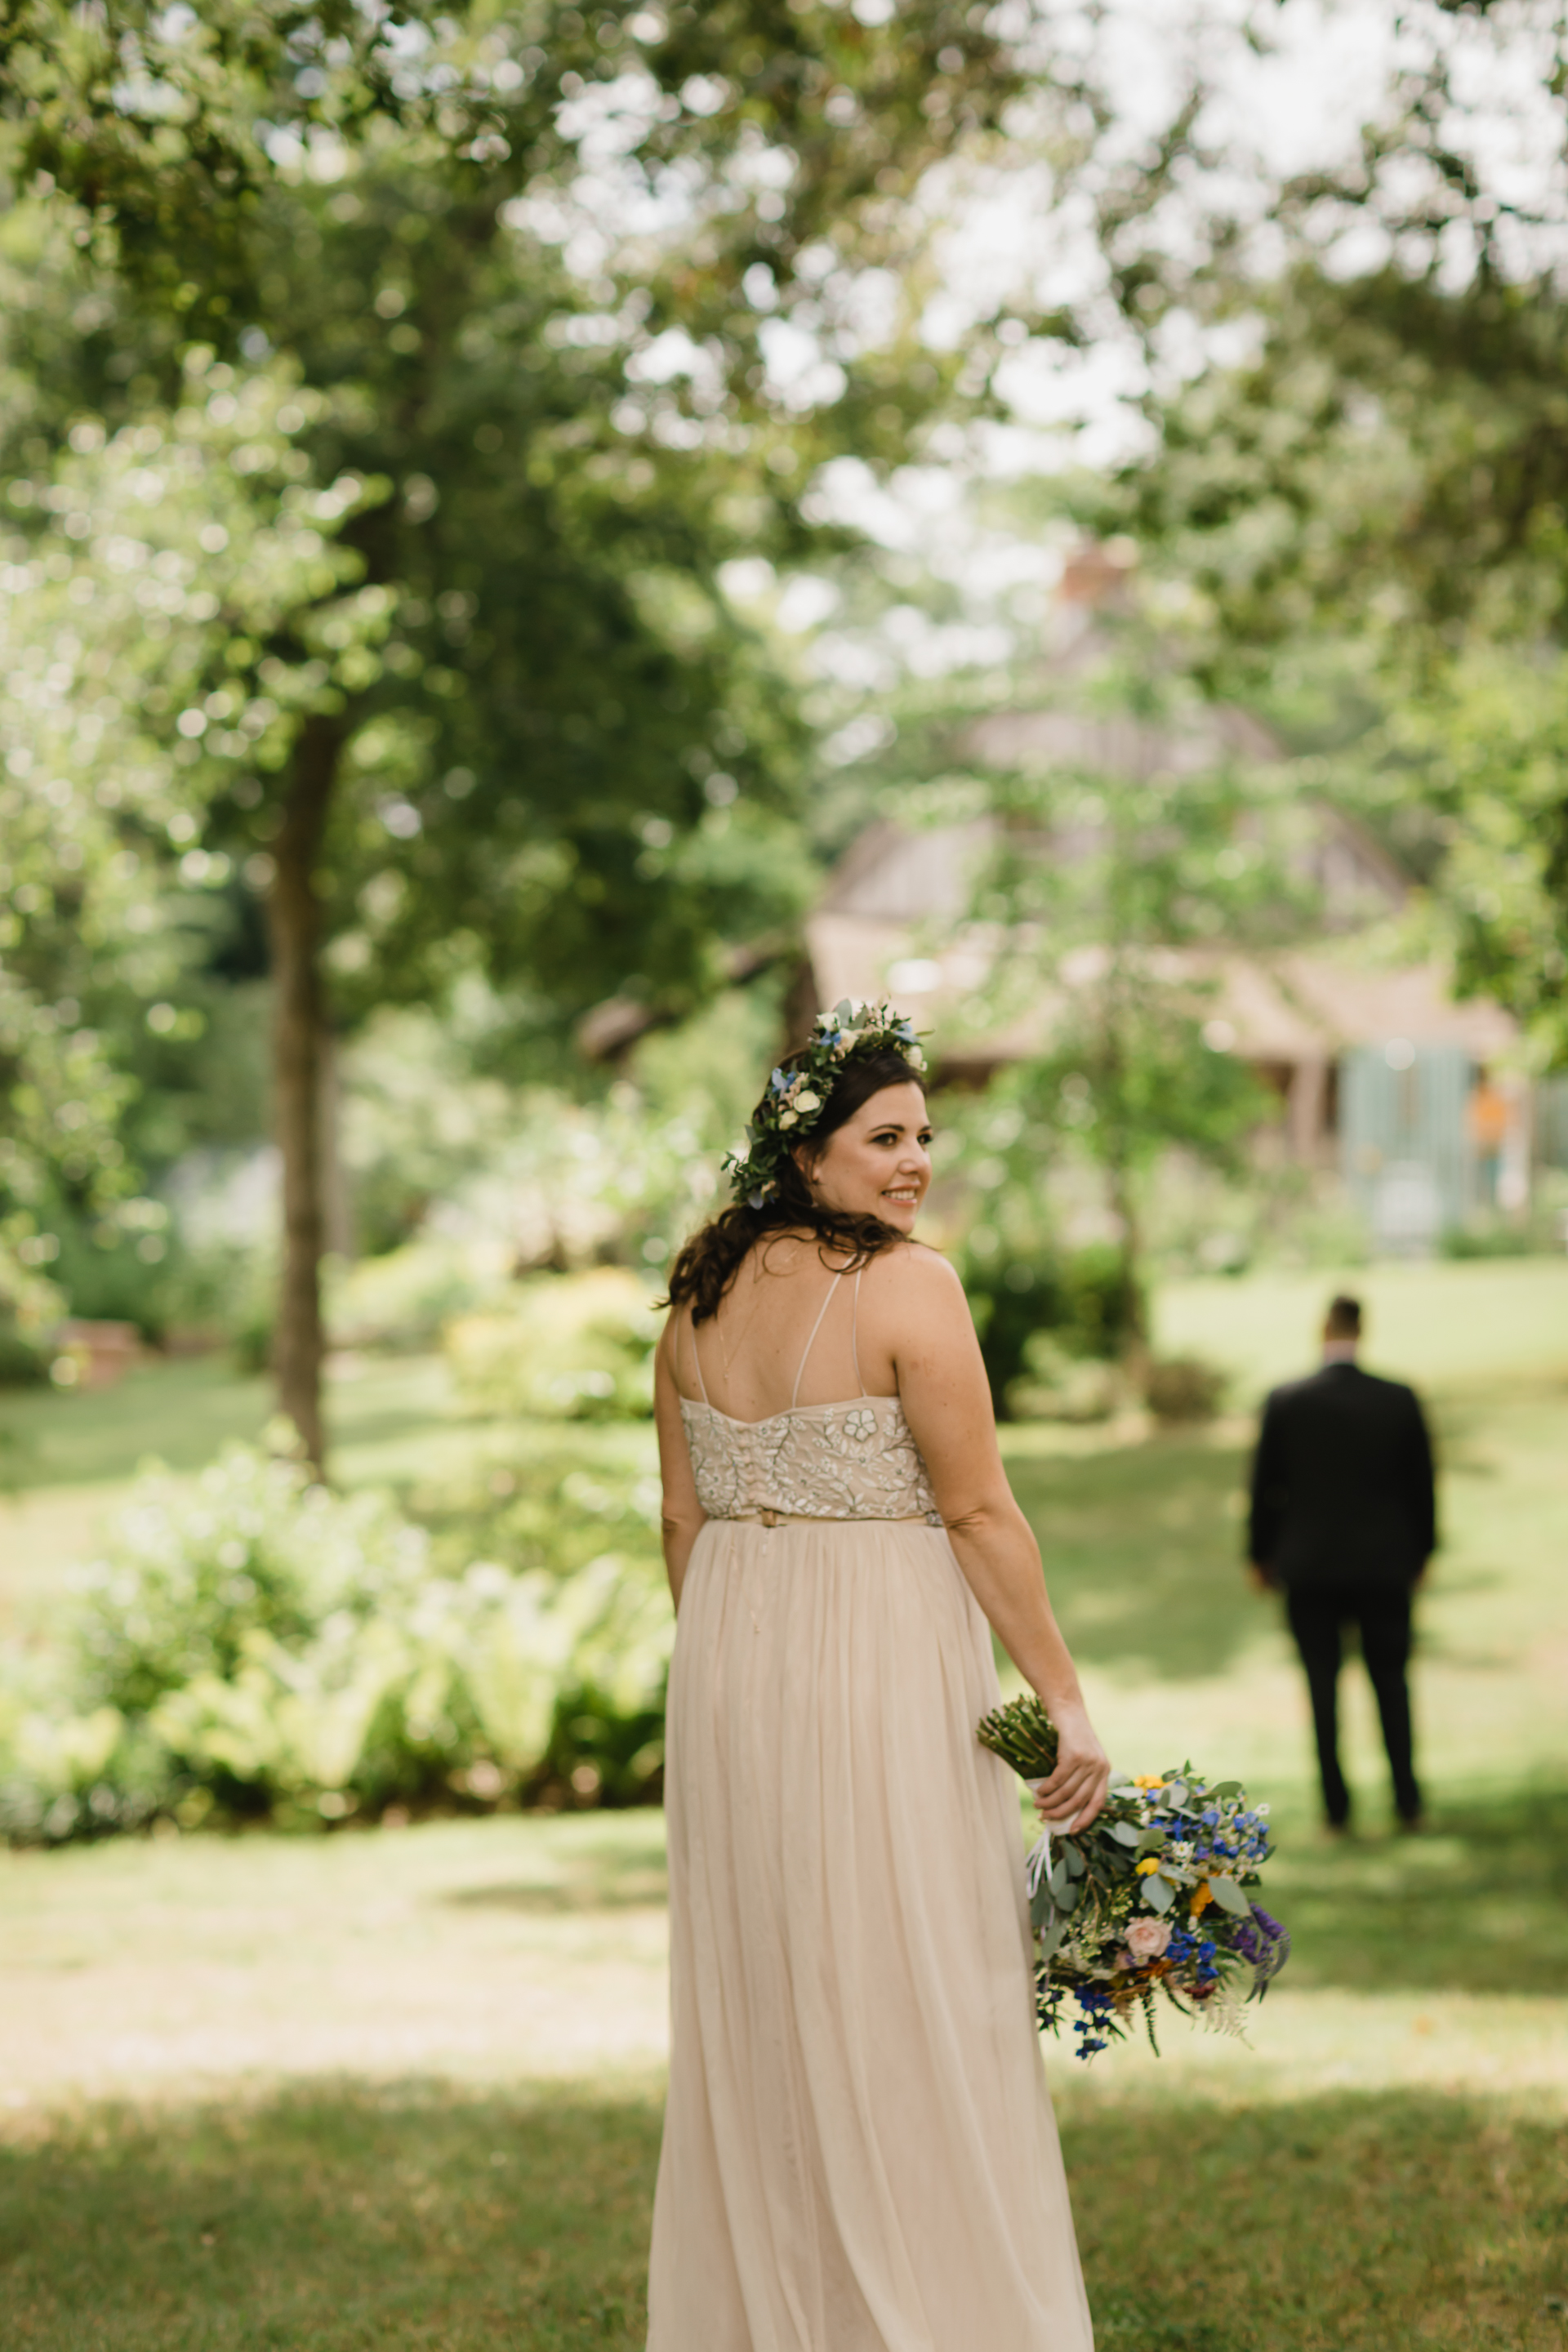 Gianna Keiko Atlanta NYC California Wedding Photographer_Sneak Peek.jpg